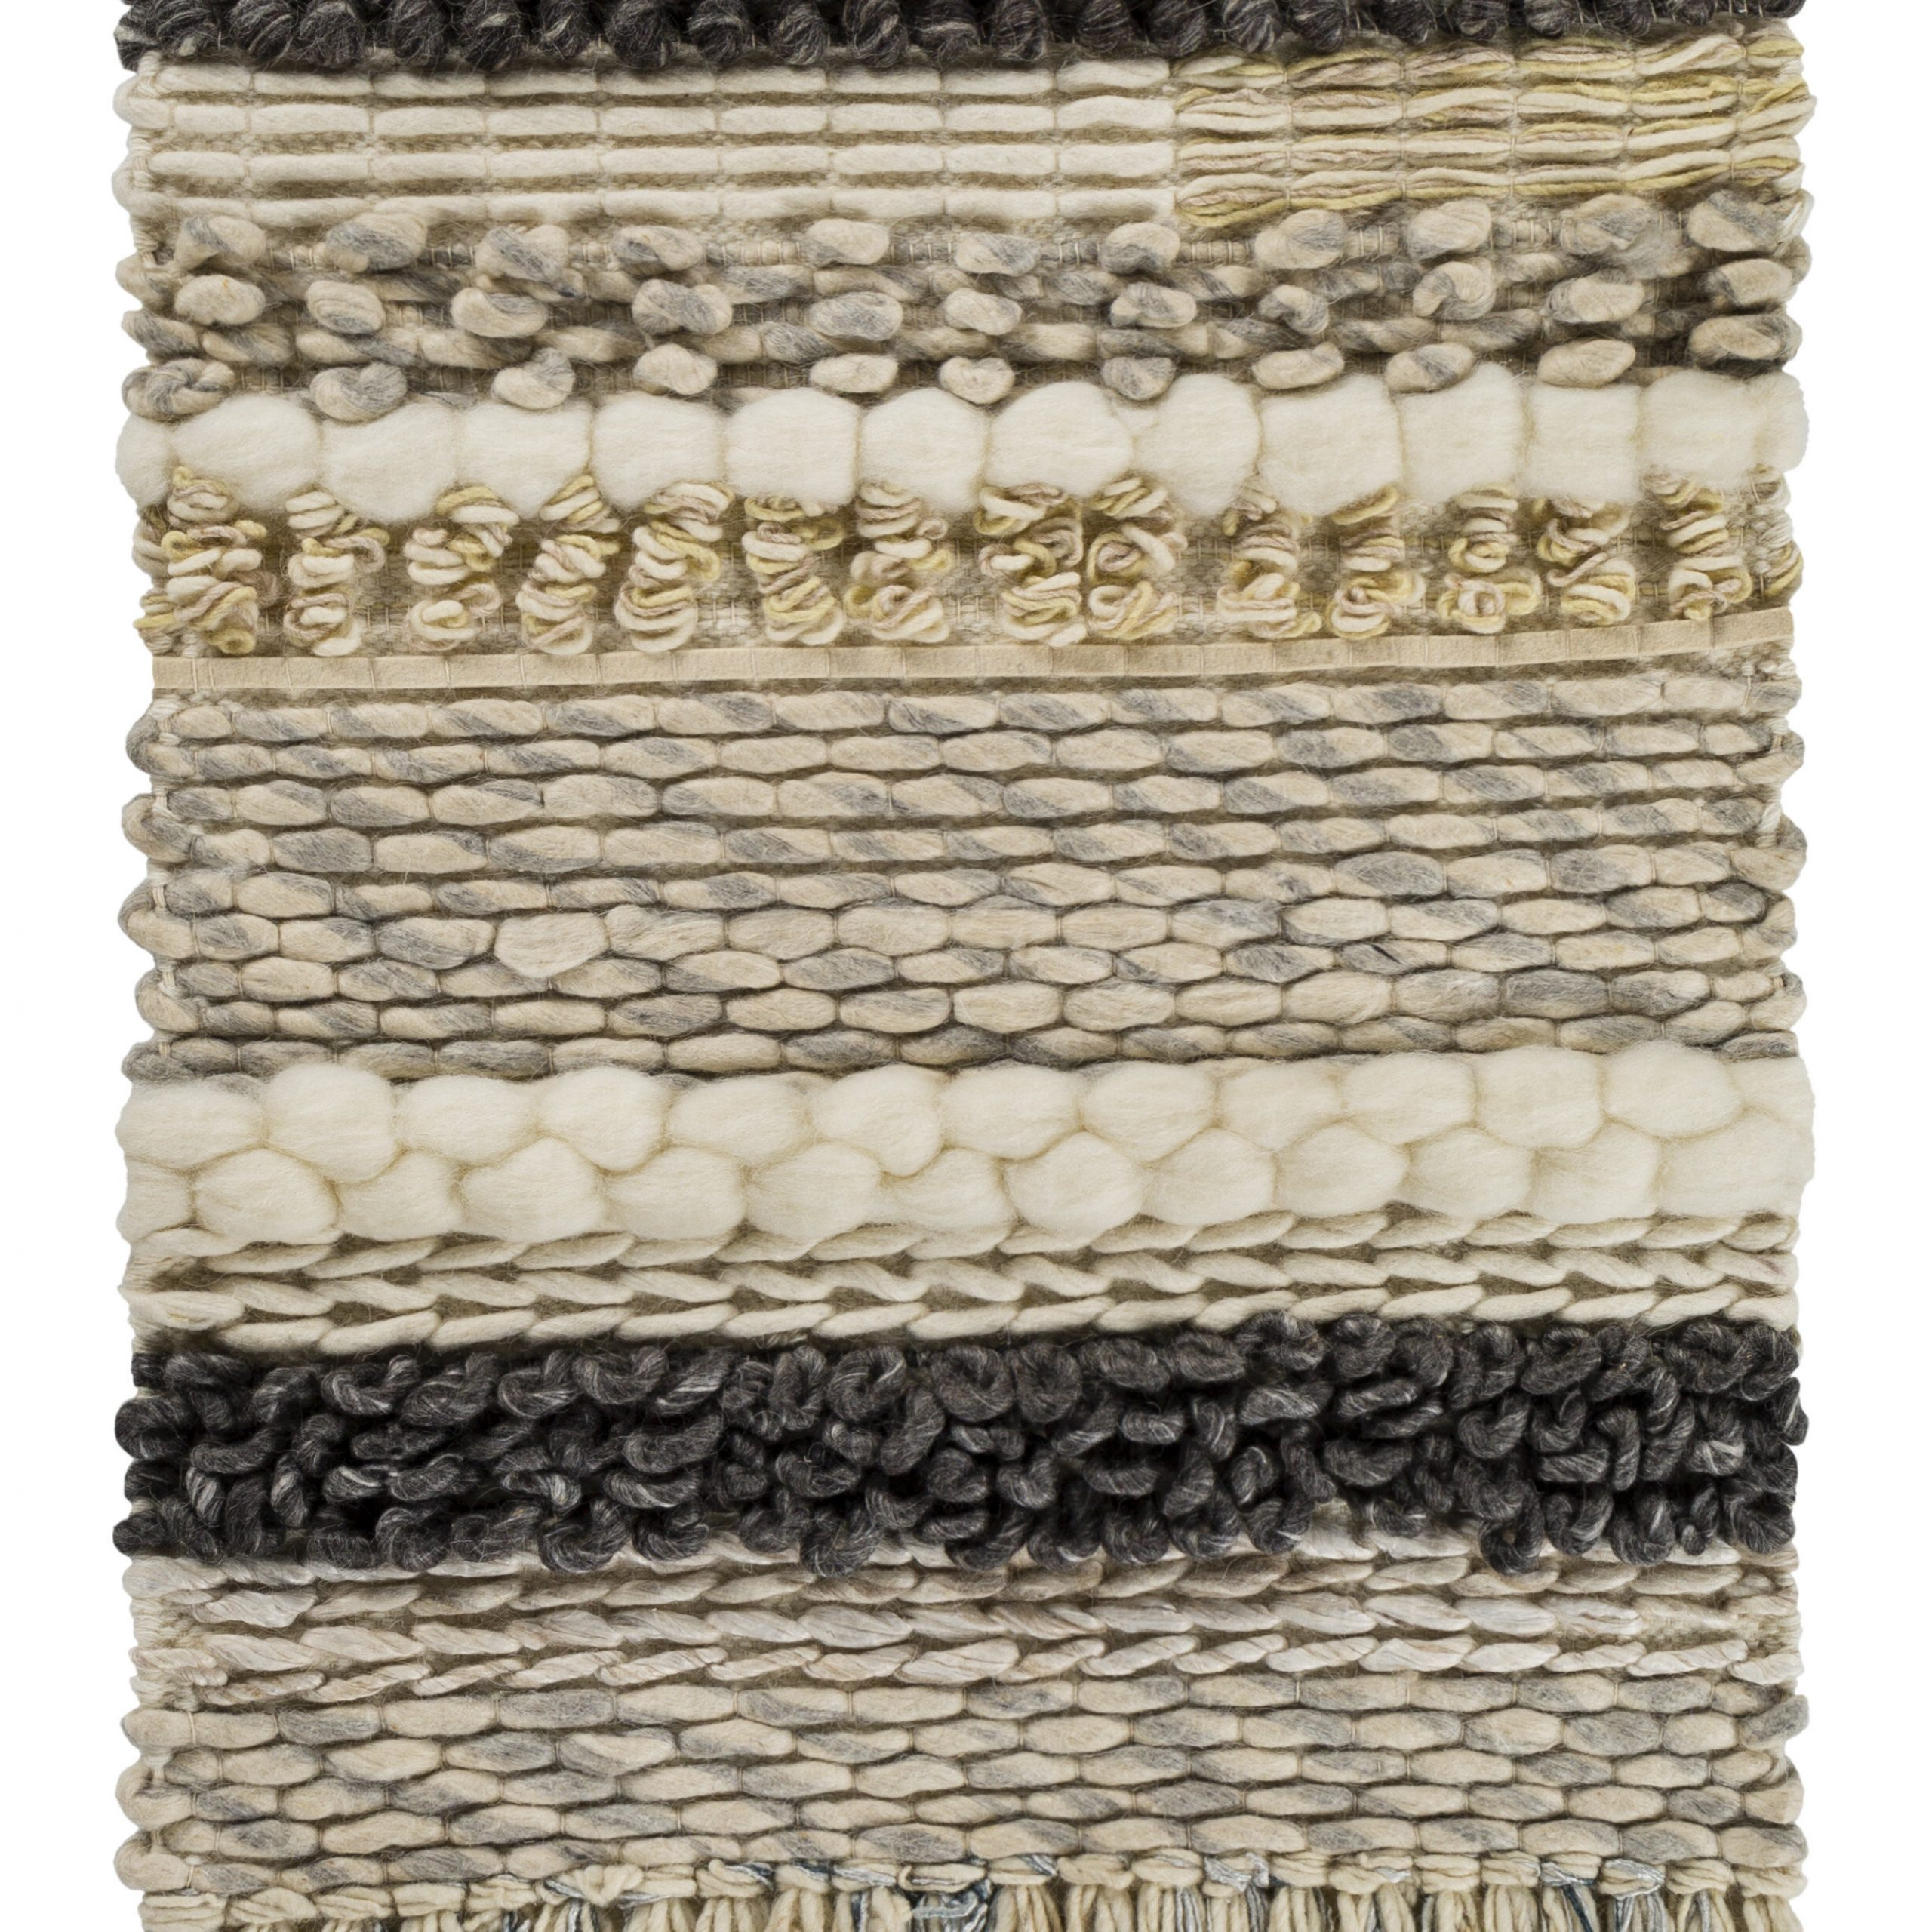 Featured Photo of Blended Fabric Teresina Wool and Viscose Wall Hangings with Hanging Accessories Included